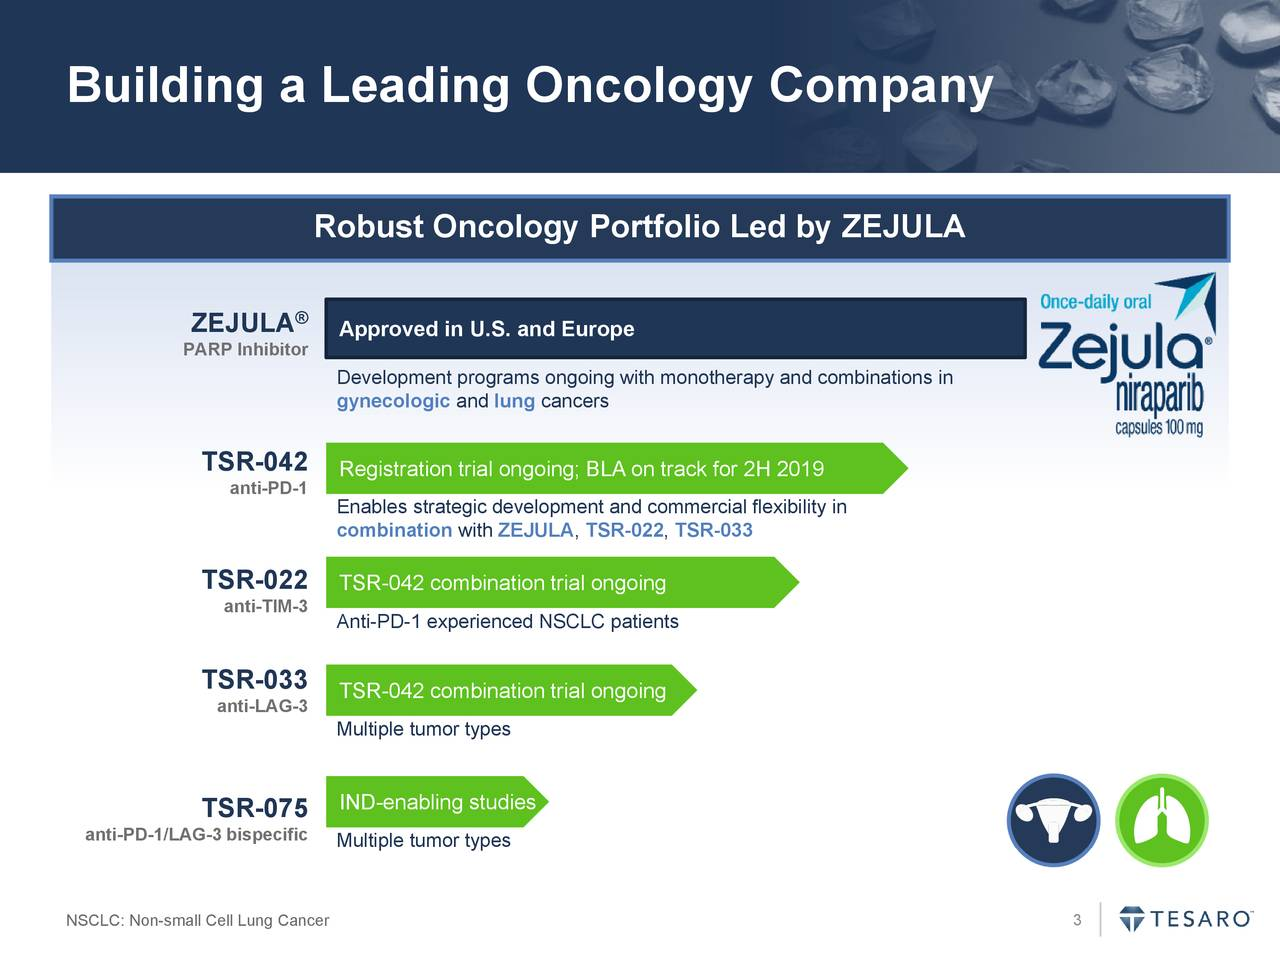 Robust Oncology Portfolio Led by ZEJULA ZEJULA ® Approved in U.S. and Europe PARP Inhibitor Development programs ongoing with monotherapy and combinations in gynecologic and lung cancers TSR-042 Registration trial ongoing; BLA on track for 2H 2019 anti-PD-1 Enables strategic development and commercial flexibility in combination with ZEJULA, TSR-022, TSR-033 TSR-022 TSR-042 combination trial ongoing anti-TIM-3 Anti-PD-1 experienced NSCLC patients TSR-033 TSR-042 combination trial ongoing anti-LAG-3 Multiple tumor types TSR-075 IND-enabling studies anti-PD-1/LAG-3 bispeciMultiple tumor types NSCLC: Non-small Cell Lung Cancer 3